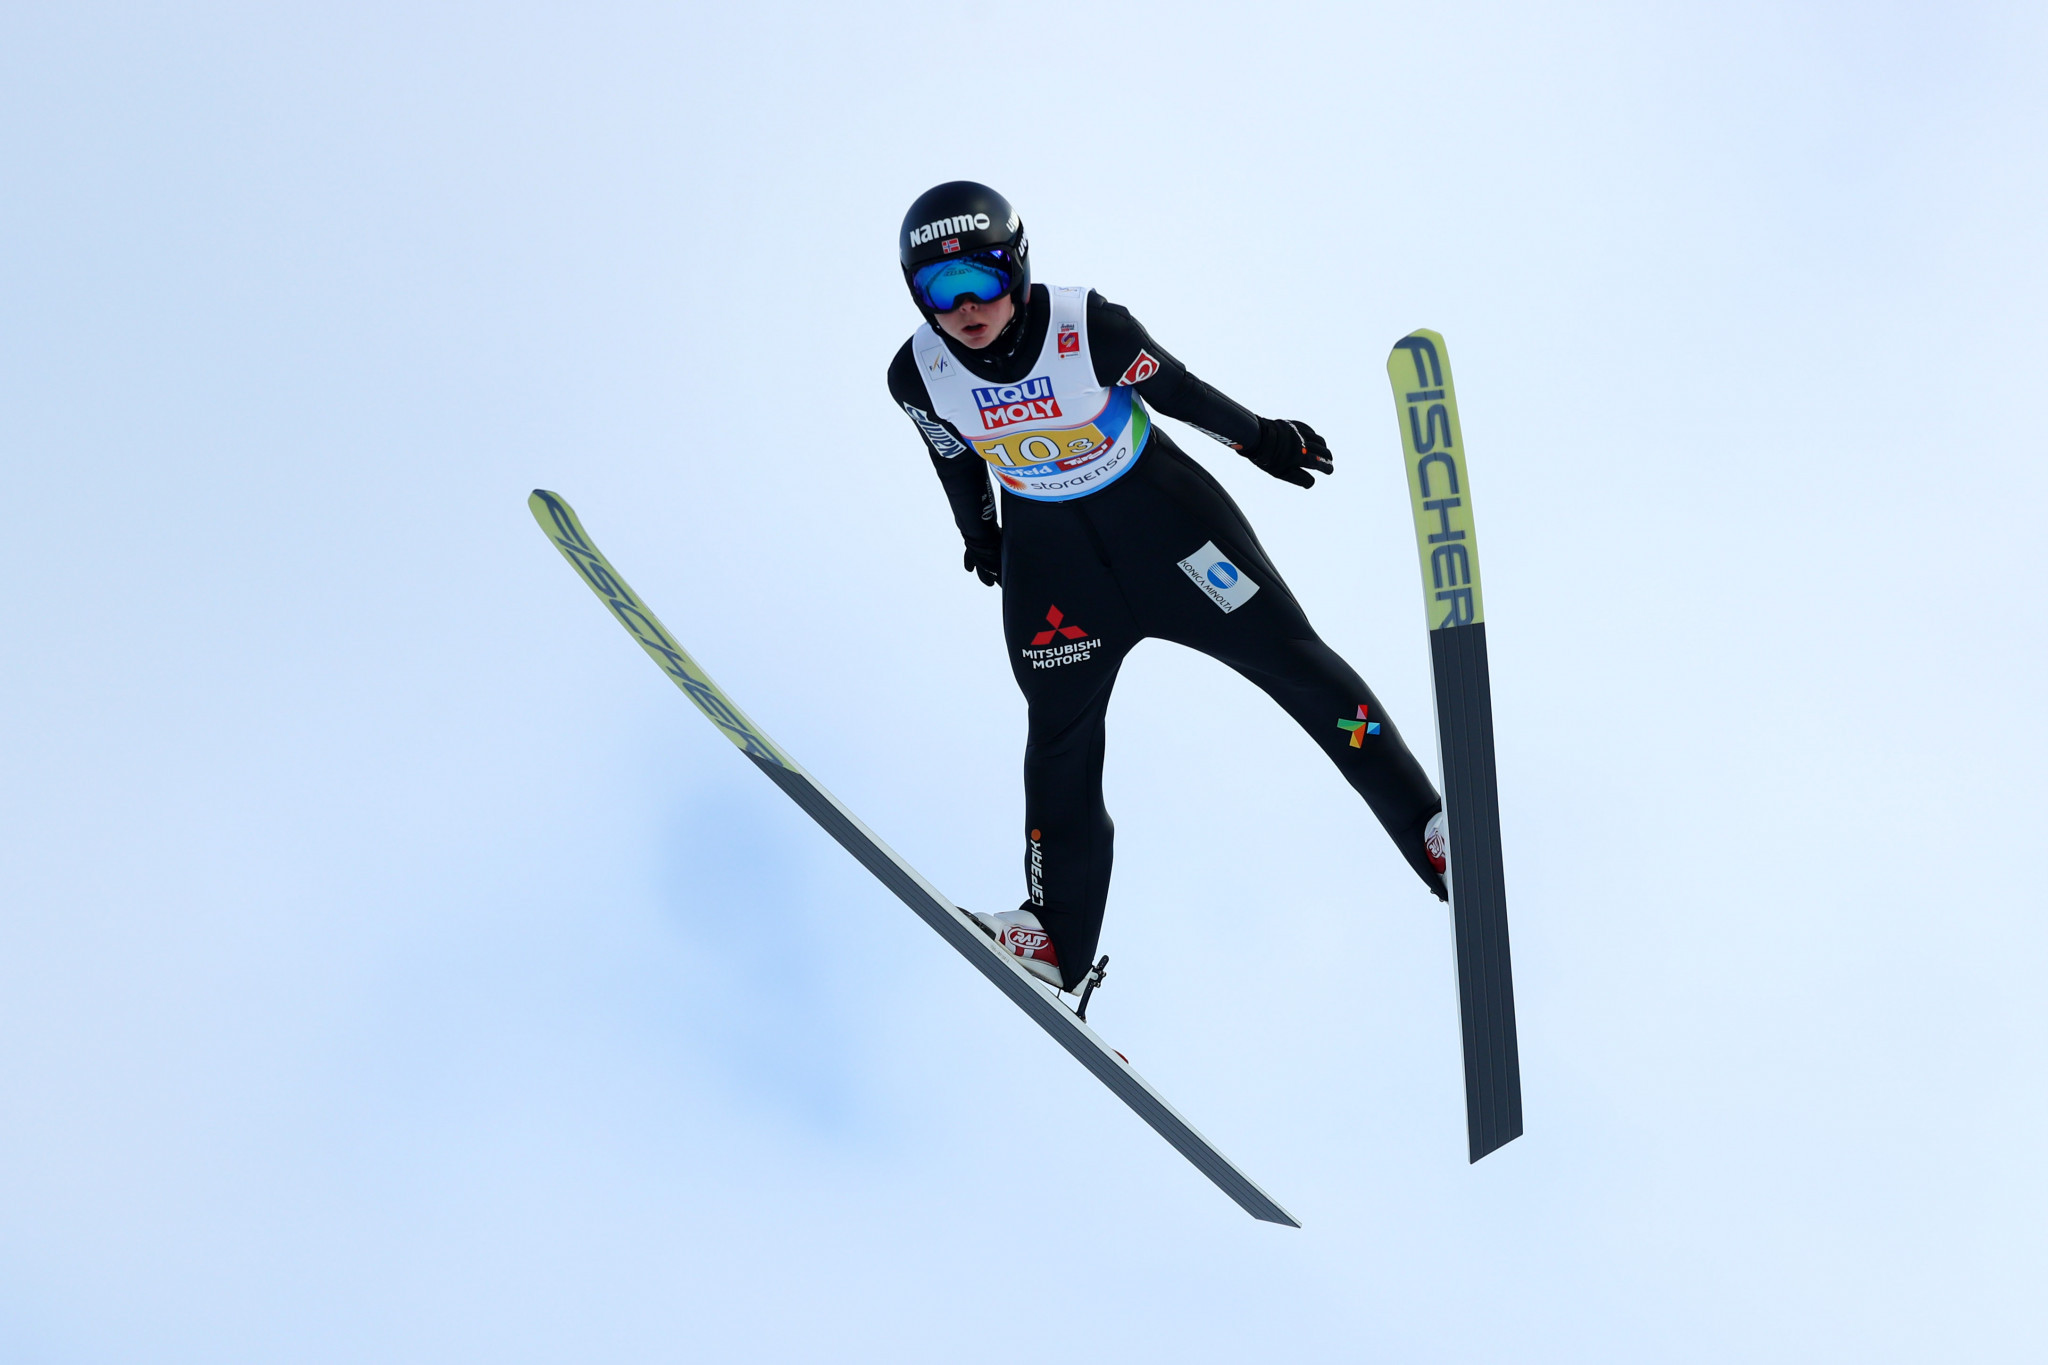 Olympic champion Lundby looks to get back on track at FIS Ski Jumping World Cup in Sapporo